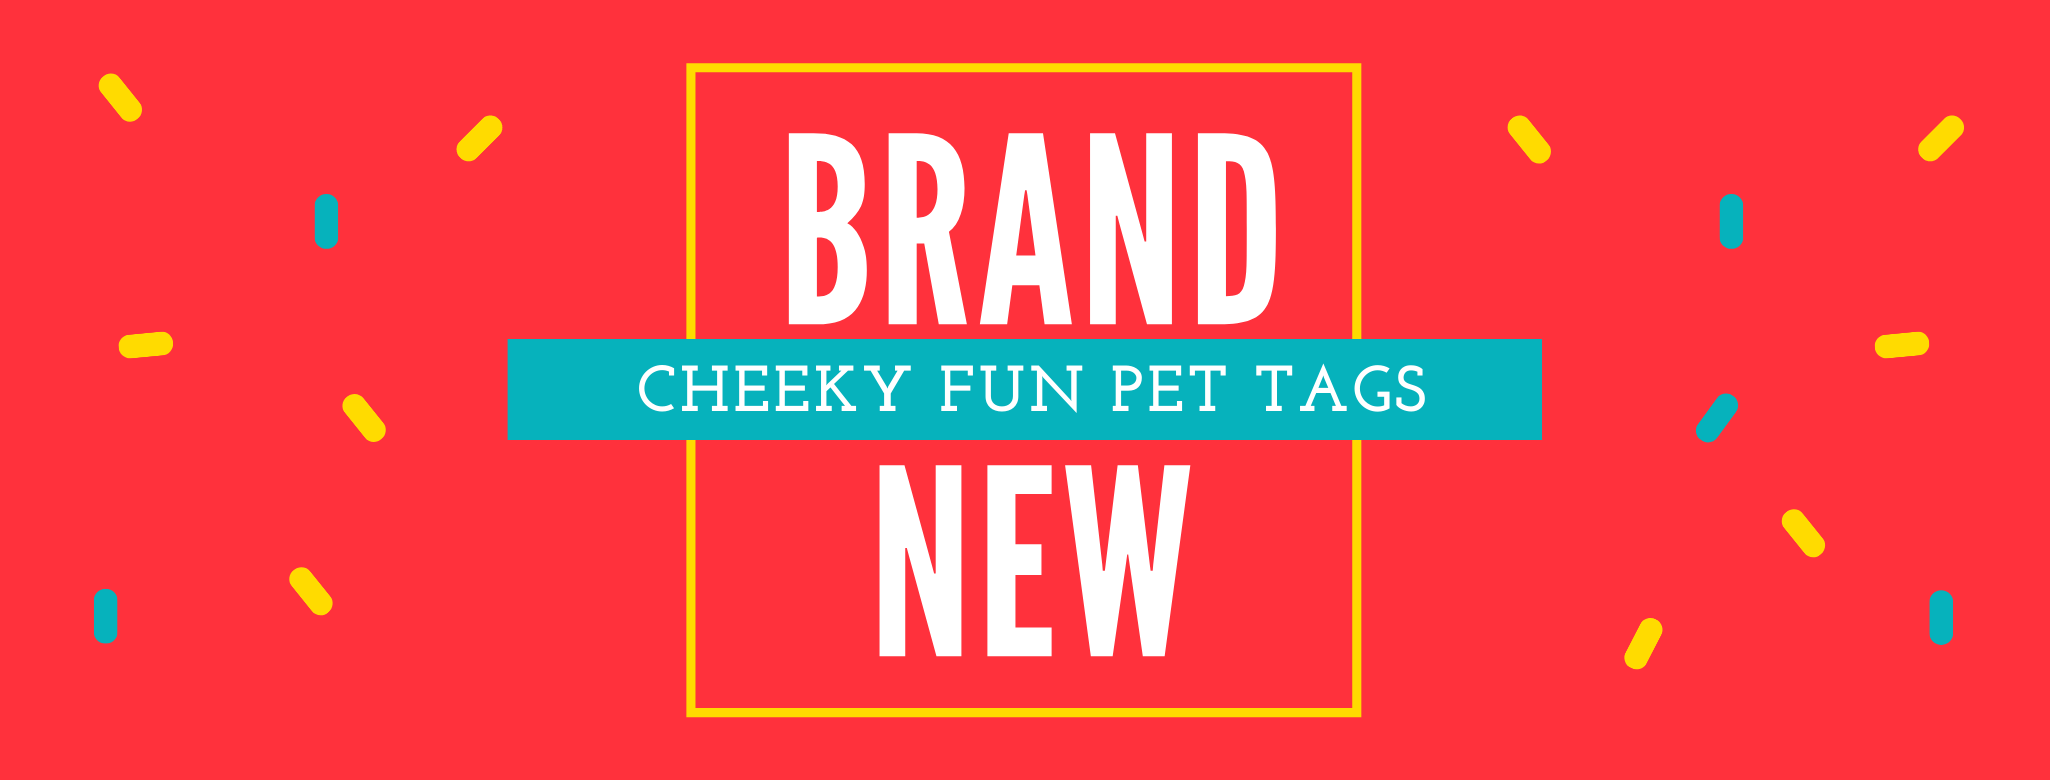 new-bad-tags-pet-tags.png